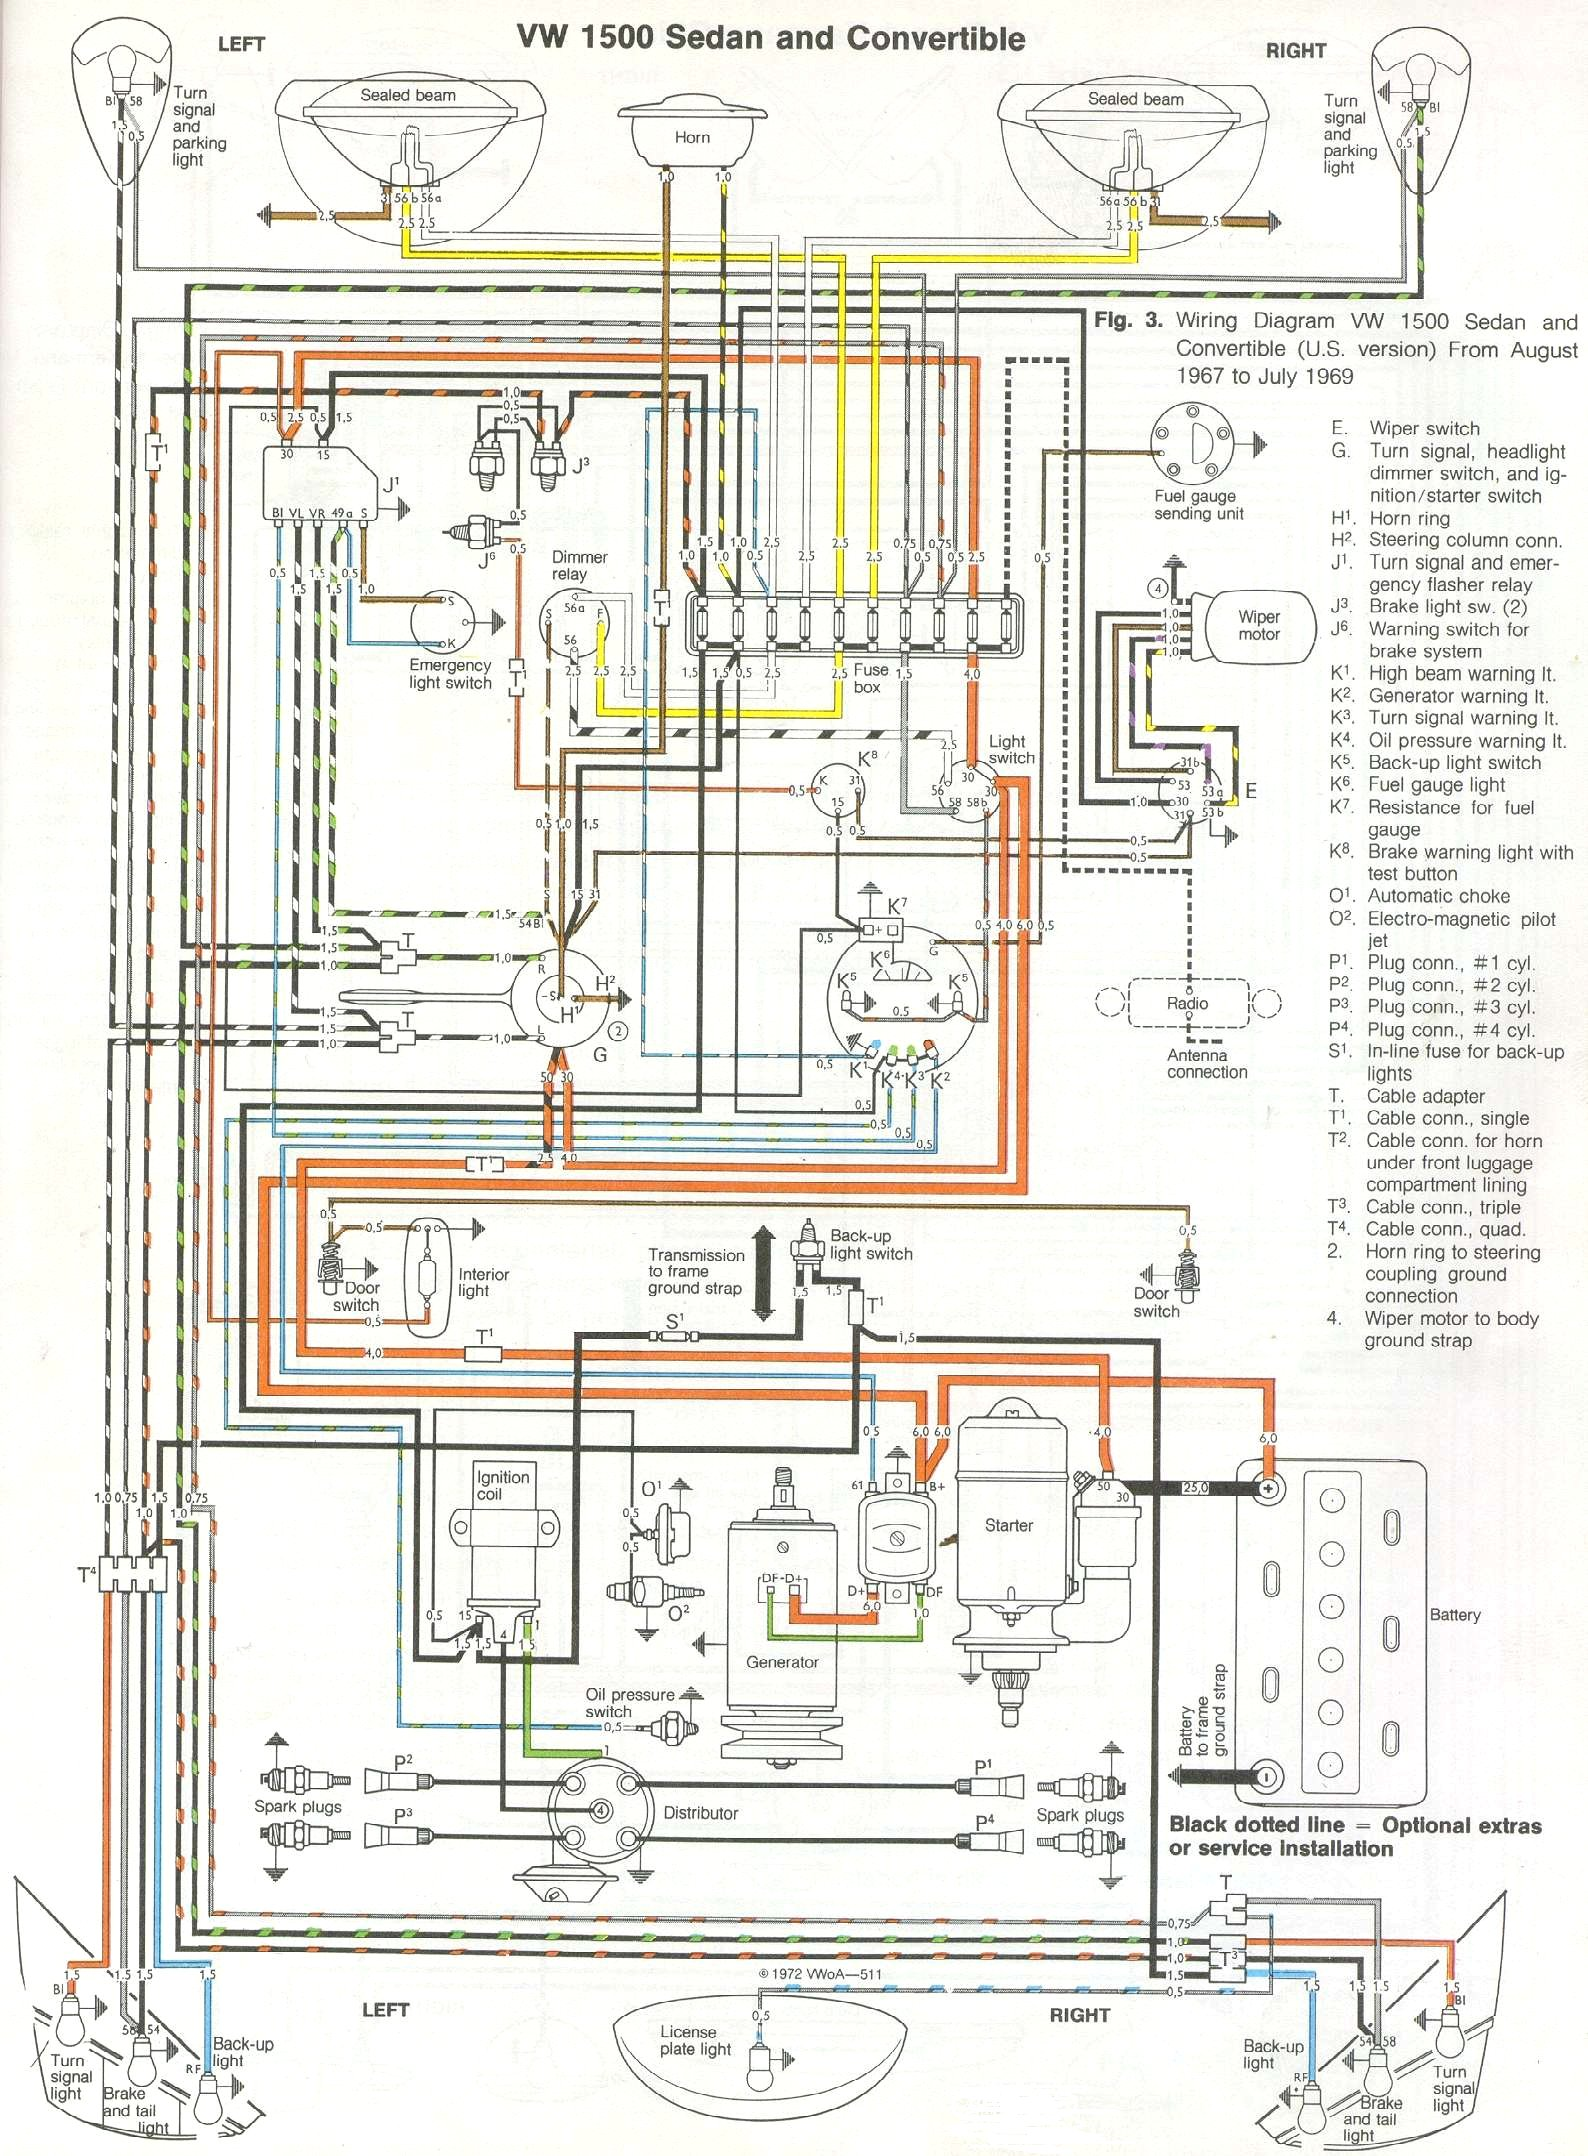 1969 71 beetle wiring diagram thegoldenbug com rh thegoldenbug com vw wiring diagram 2003 jetta air conditioning vw wiring diagram alternator